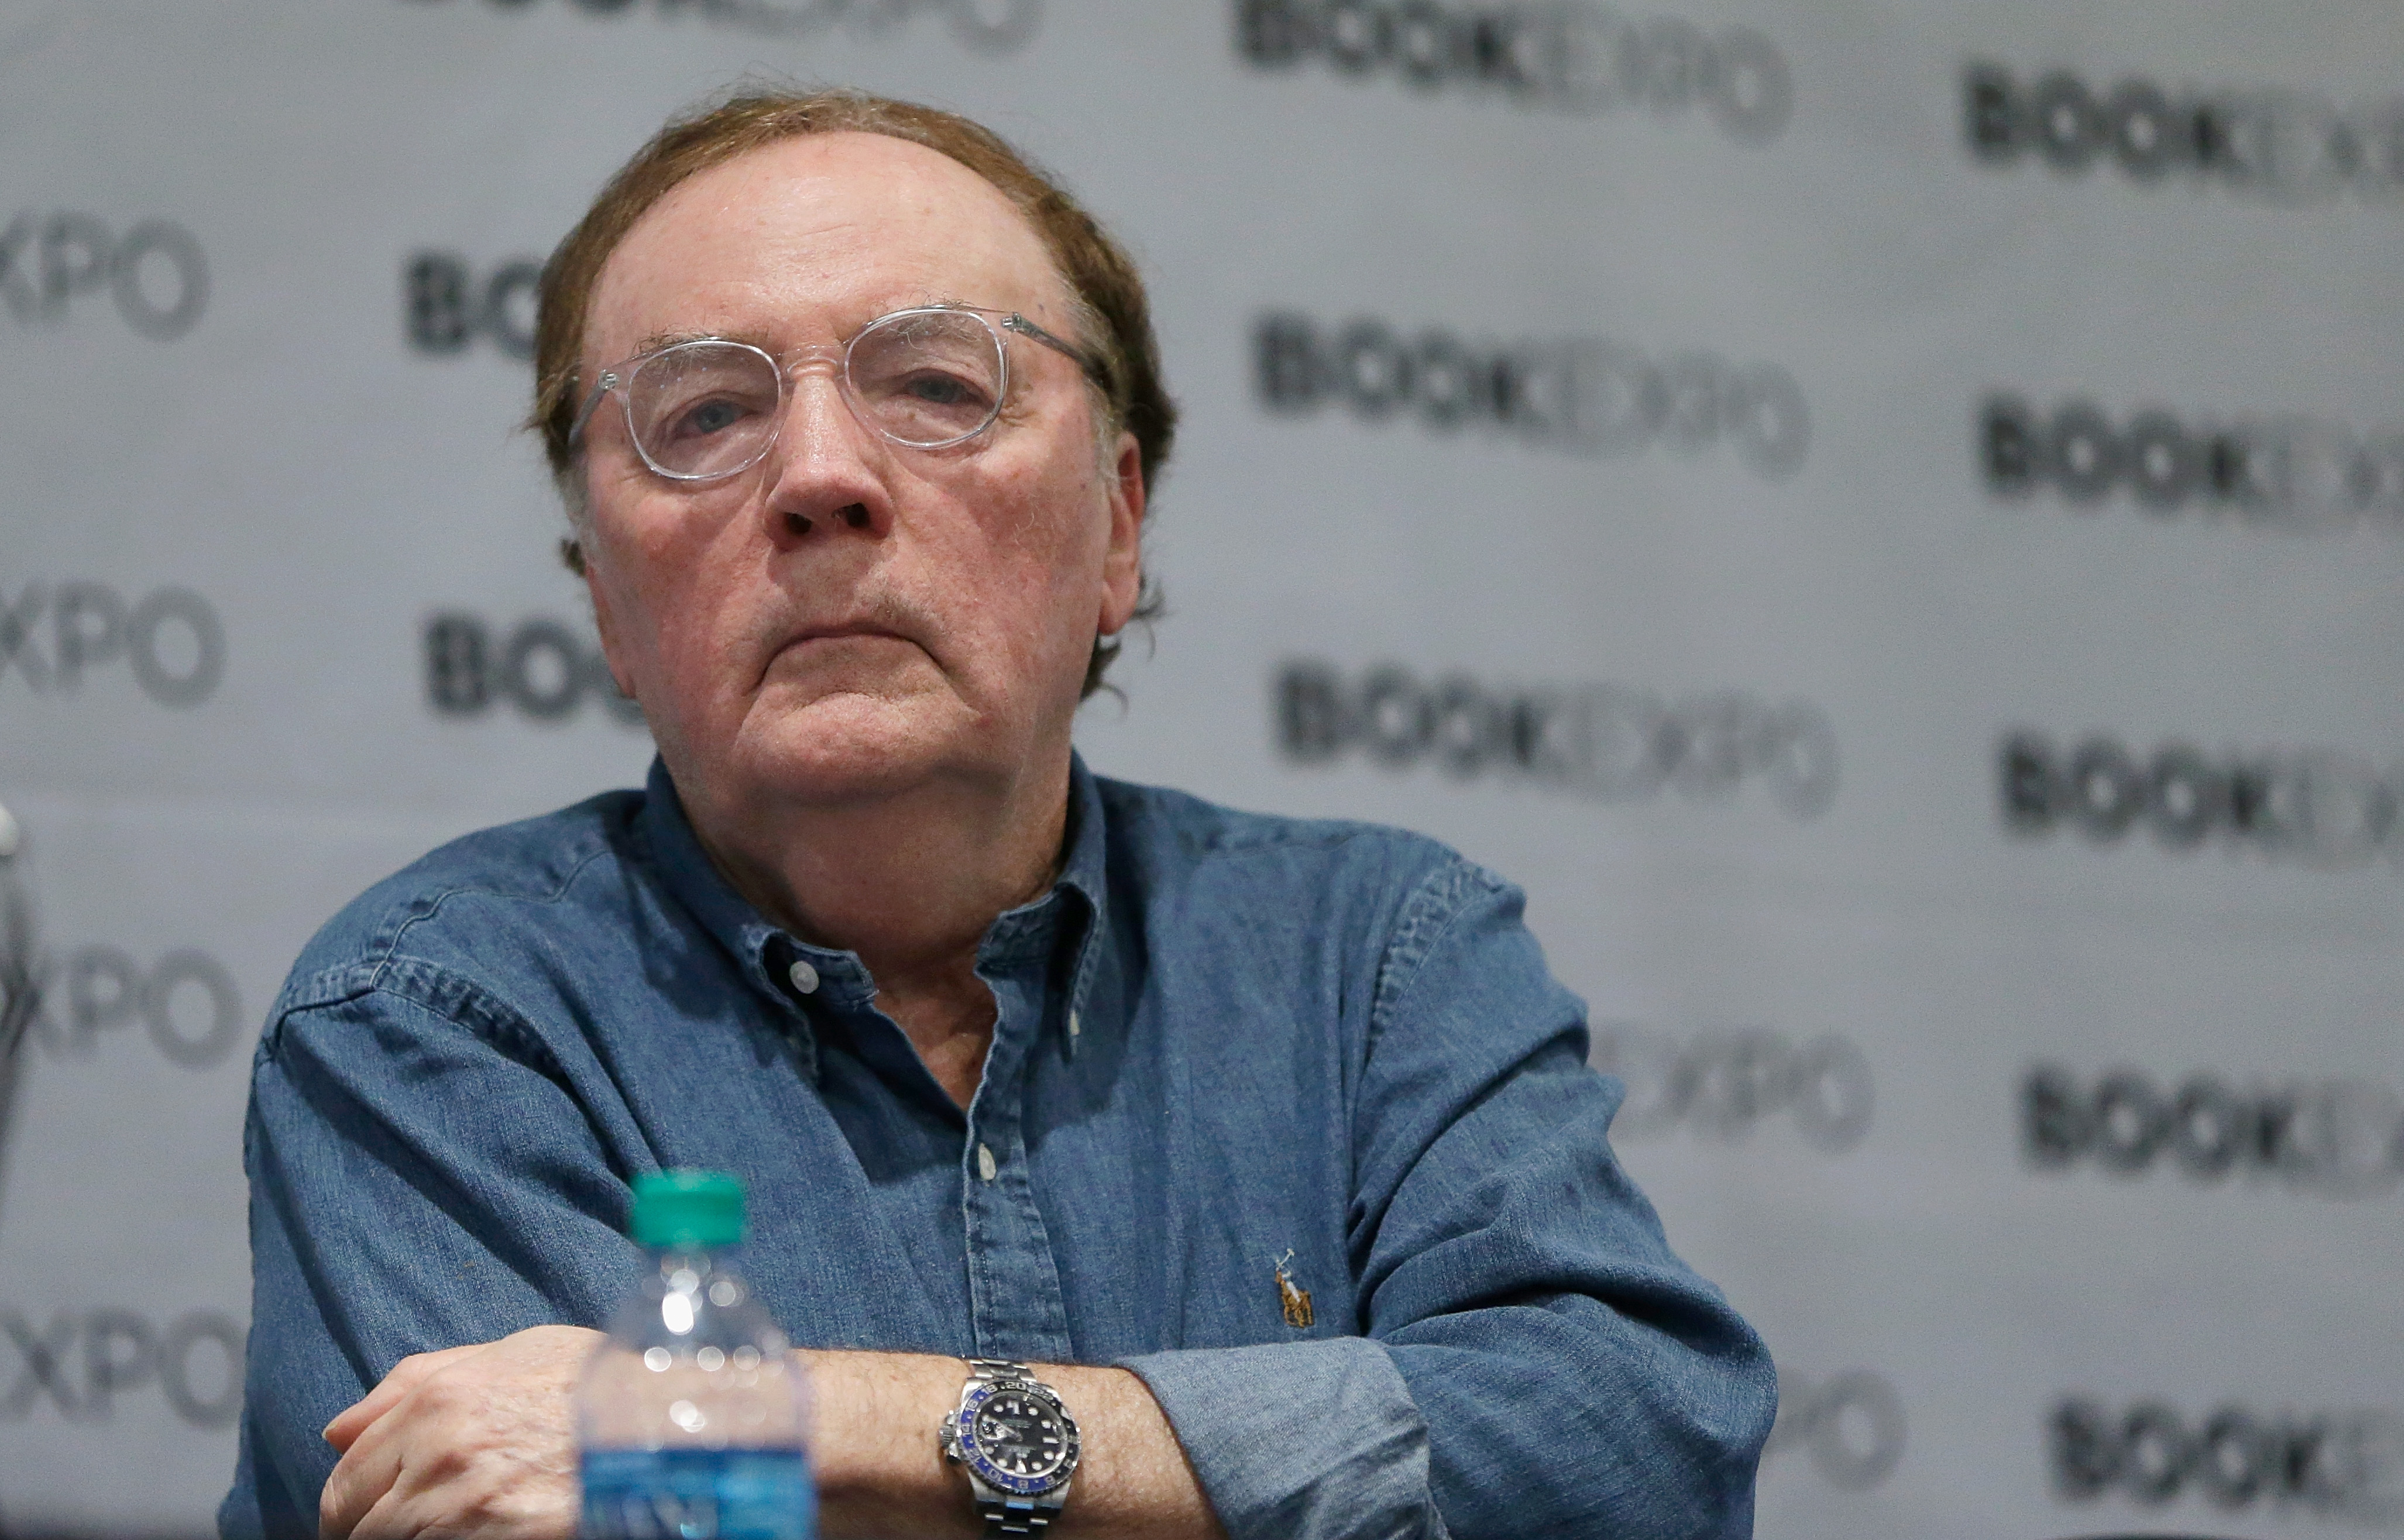 James Patterson Awards Annual Holiday Bonuses to 500 Booksellers